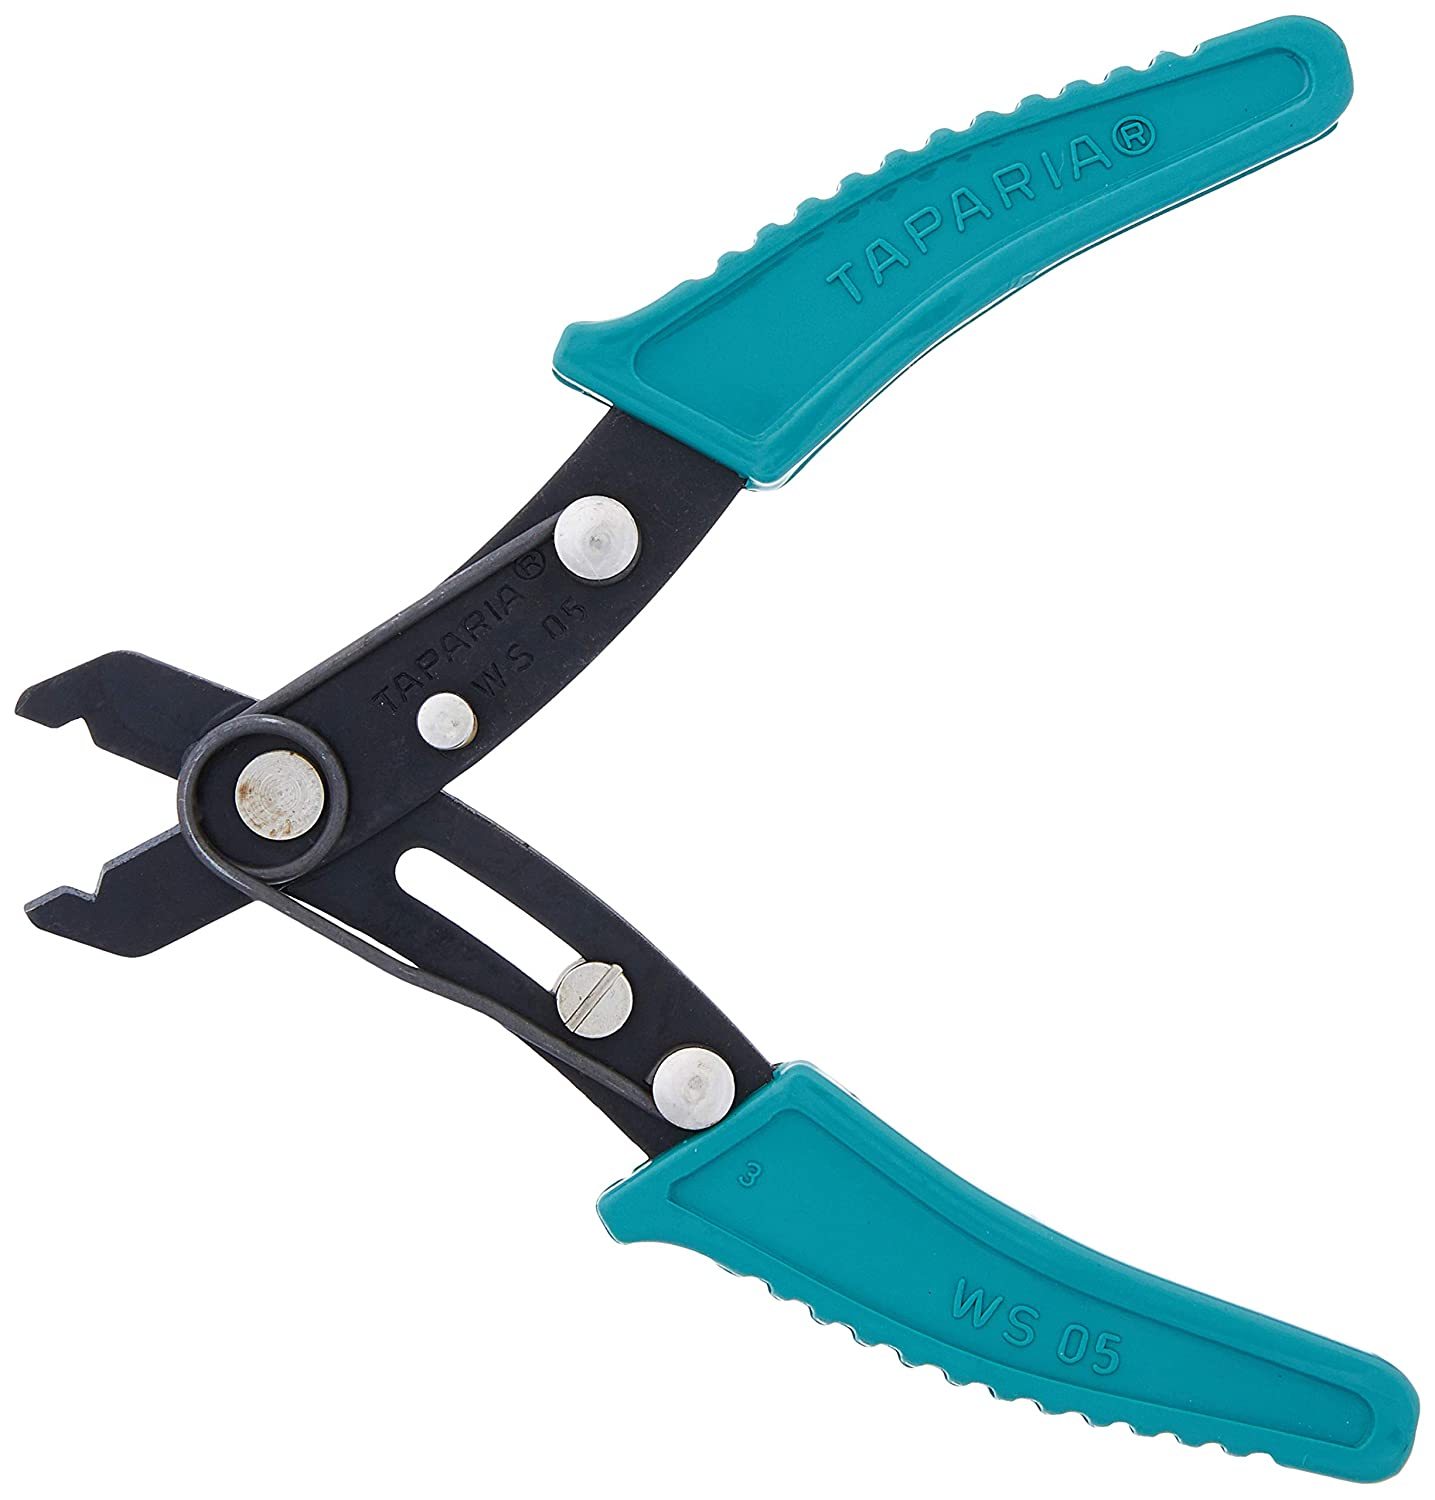 Taparia WS 05 Steel (130mm) Wire Stripping Plier (Green and Black)